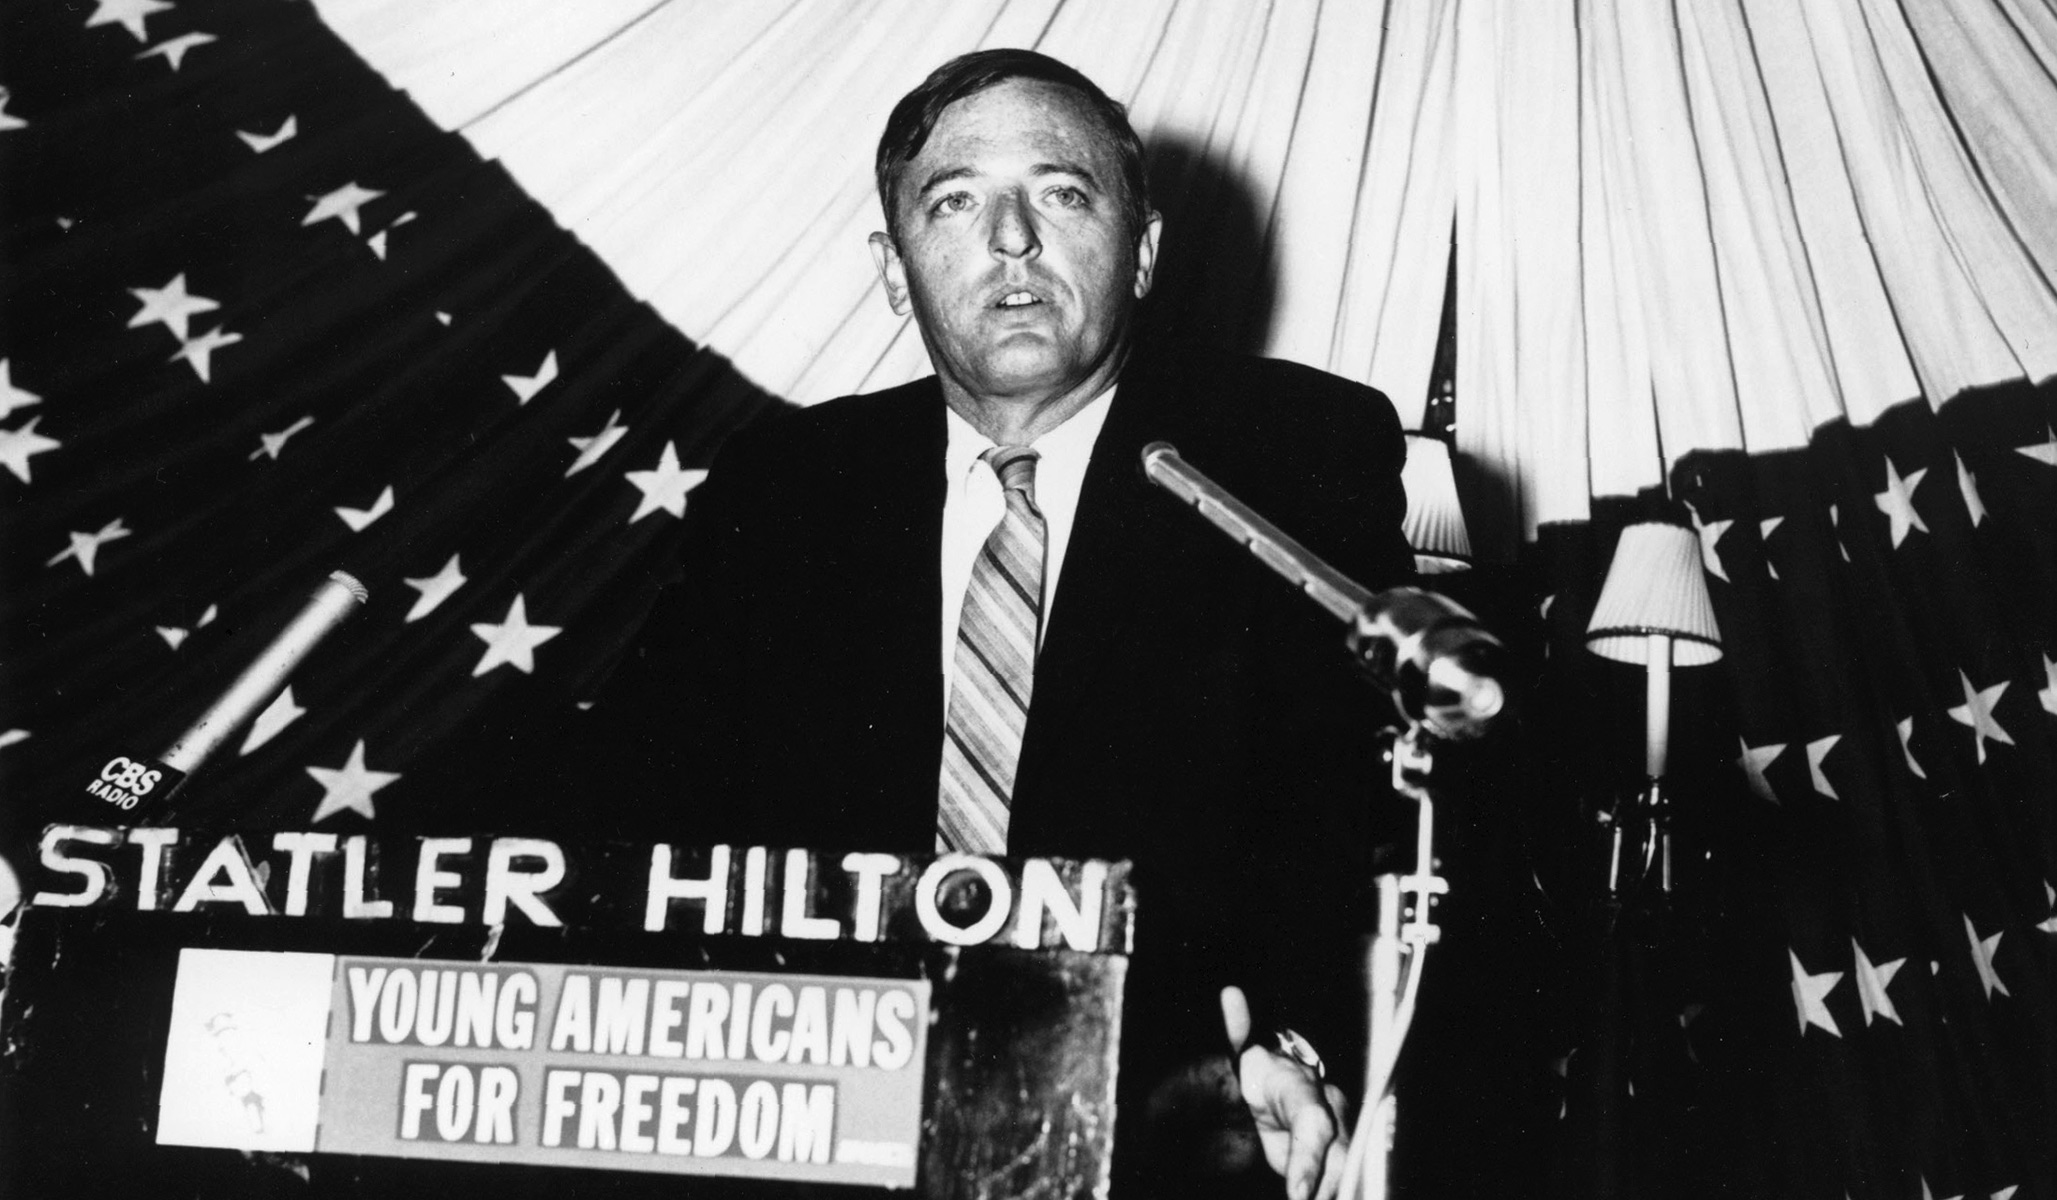 young-americans-freedom-sharon-statement-1960.jpg